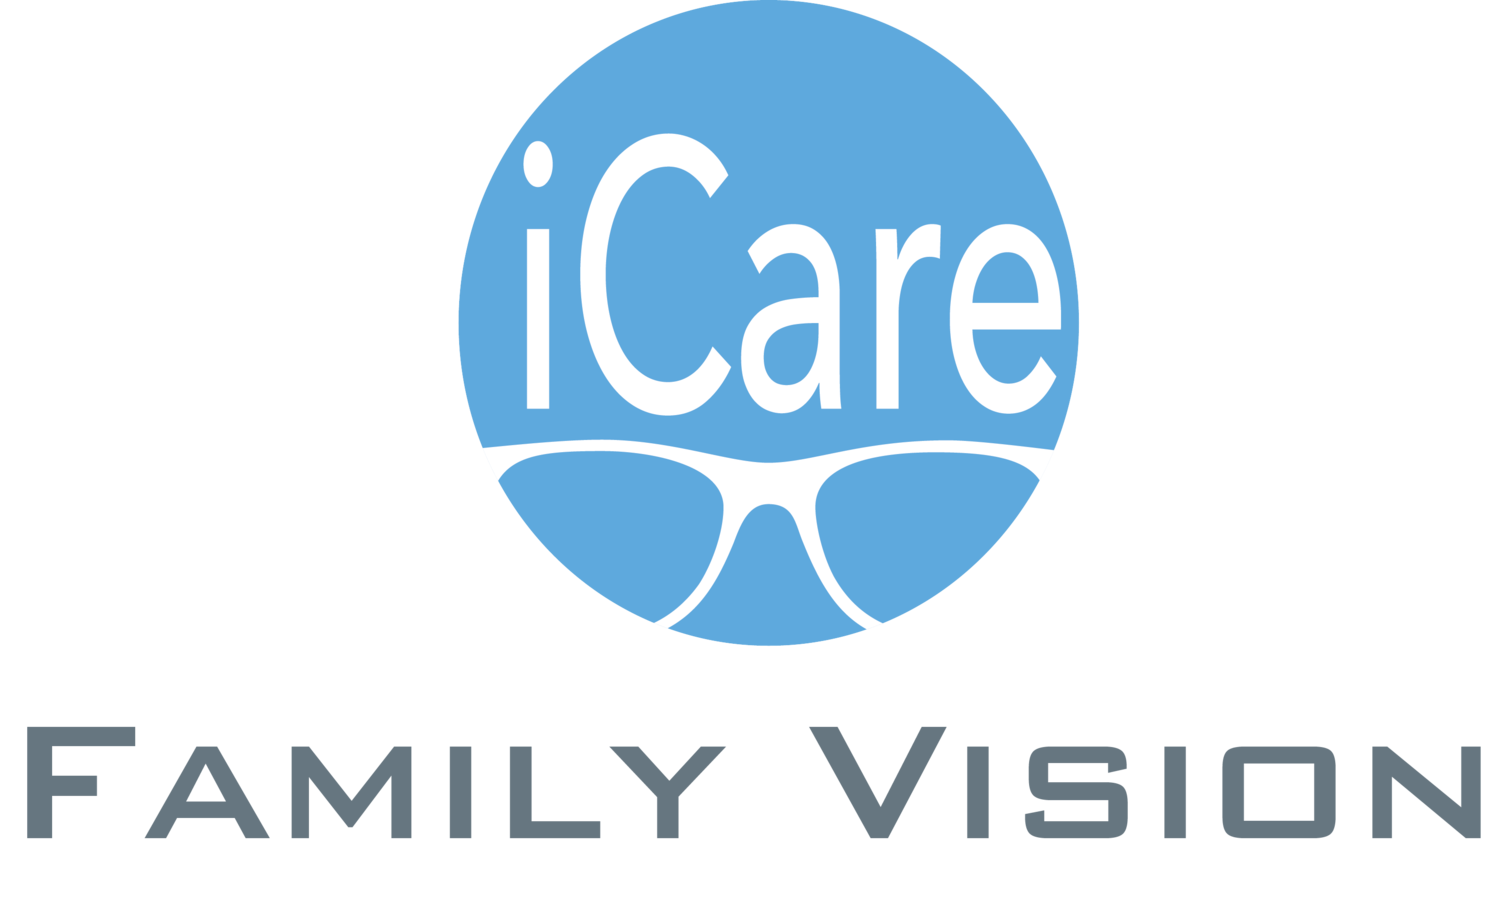 iCare Family Vision